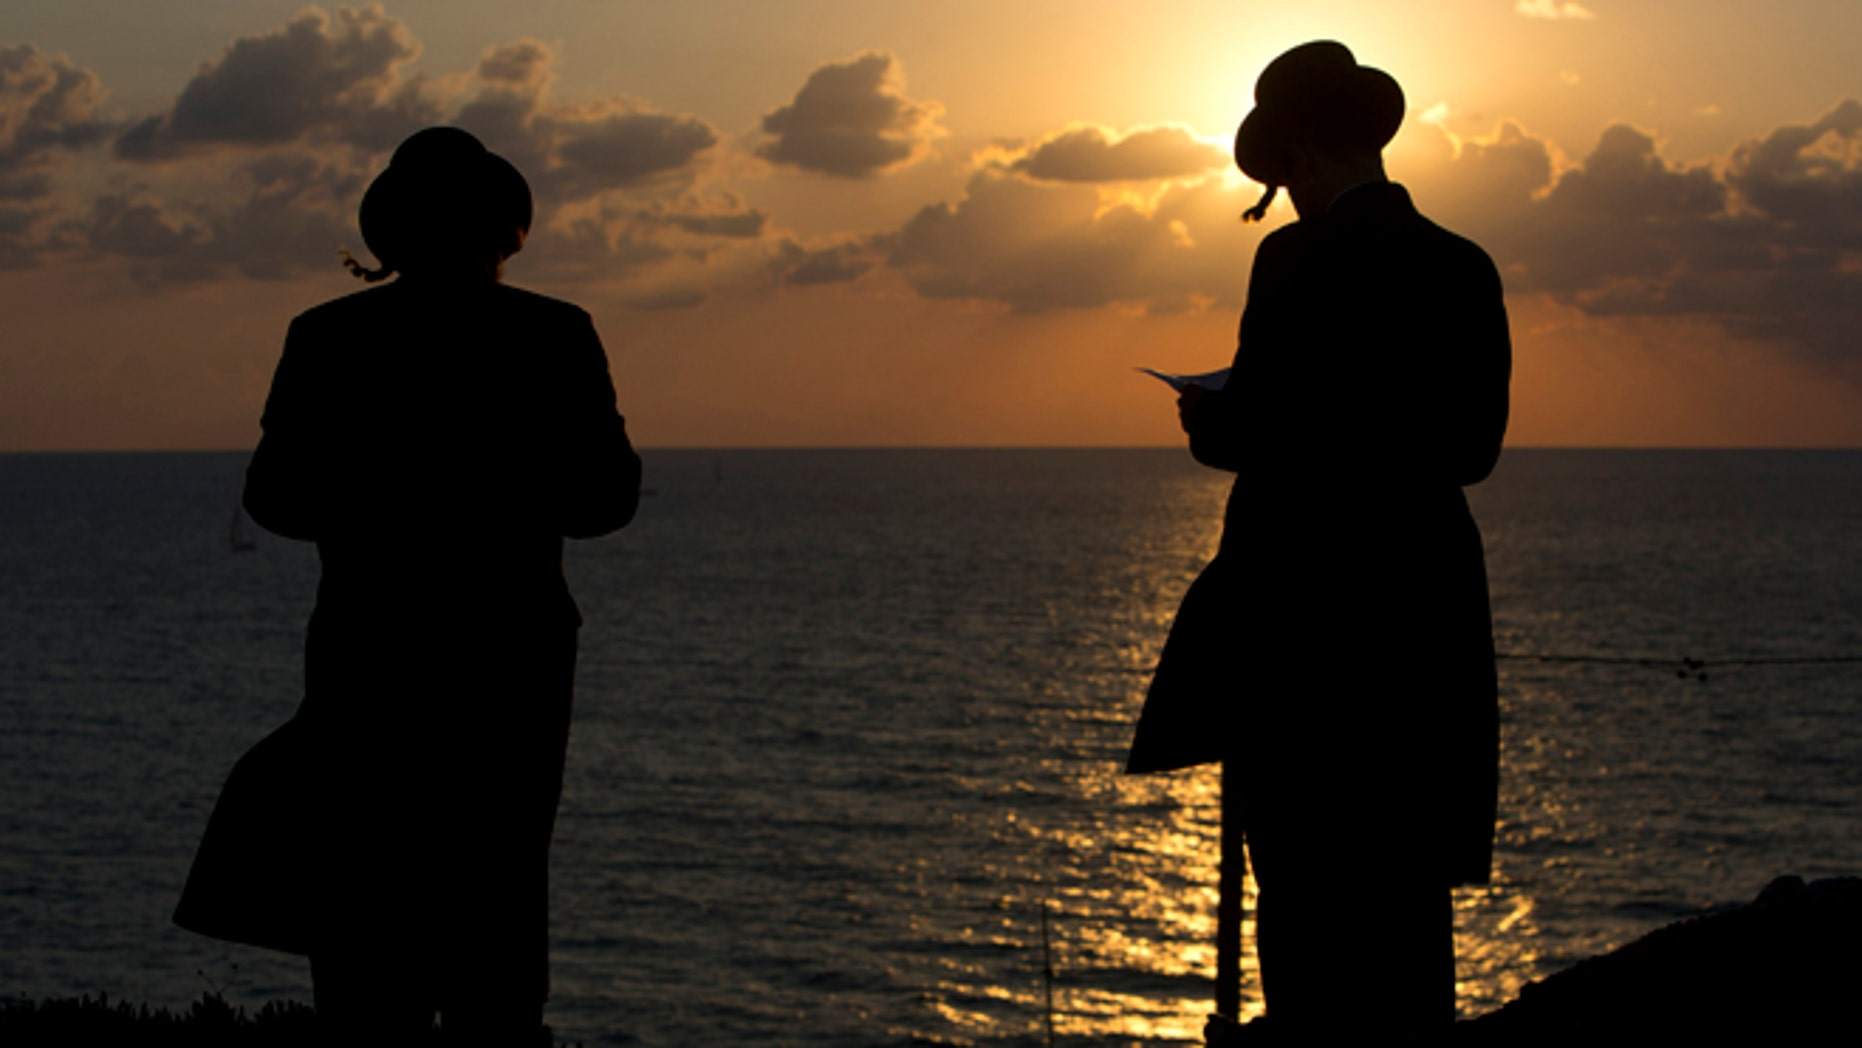 Oct. 2, 2014: Ultra-Orthodox Jews of the Hassidic sect Vizhnitz gather on a hill overlooking the Mediterranean sea as they participate in a Tashlich ceremony in Herzeliya, Israel. (AP)